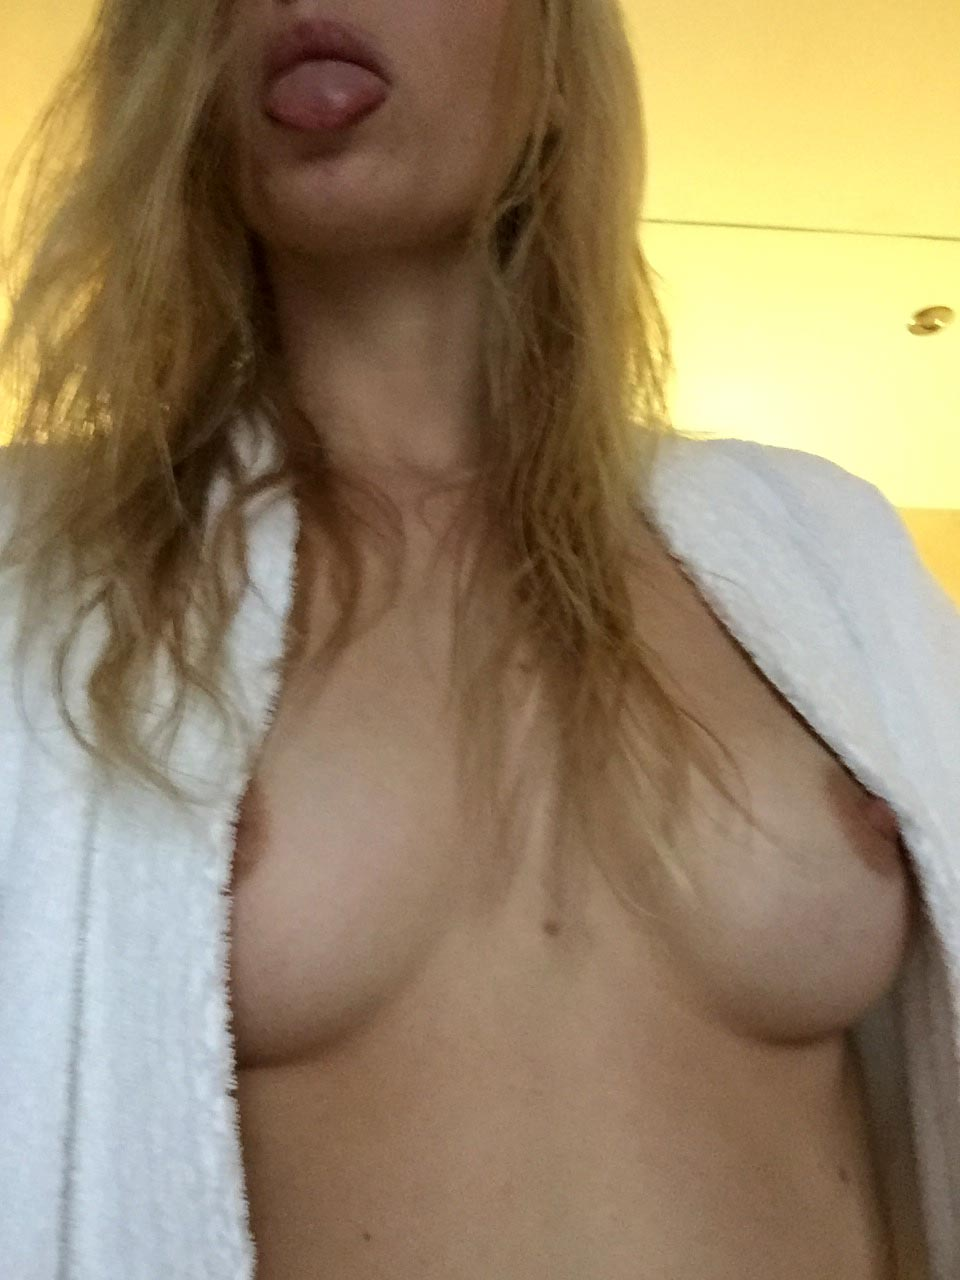 Instant online free sex chat XXX